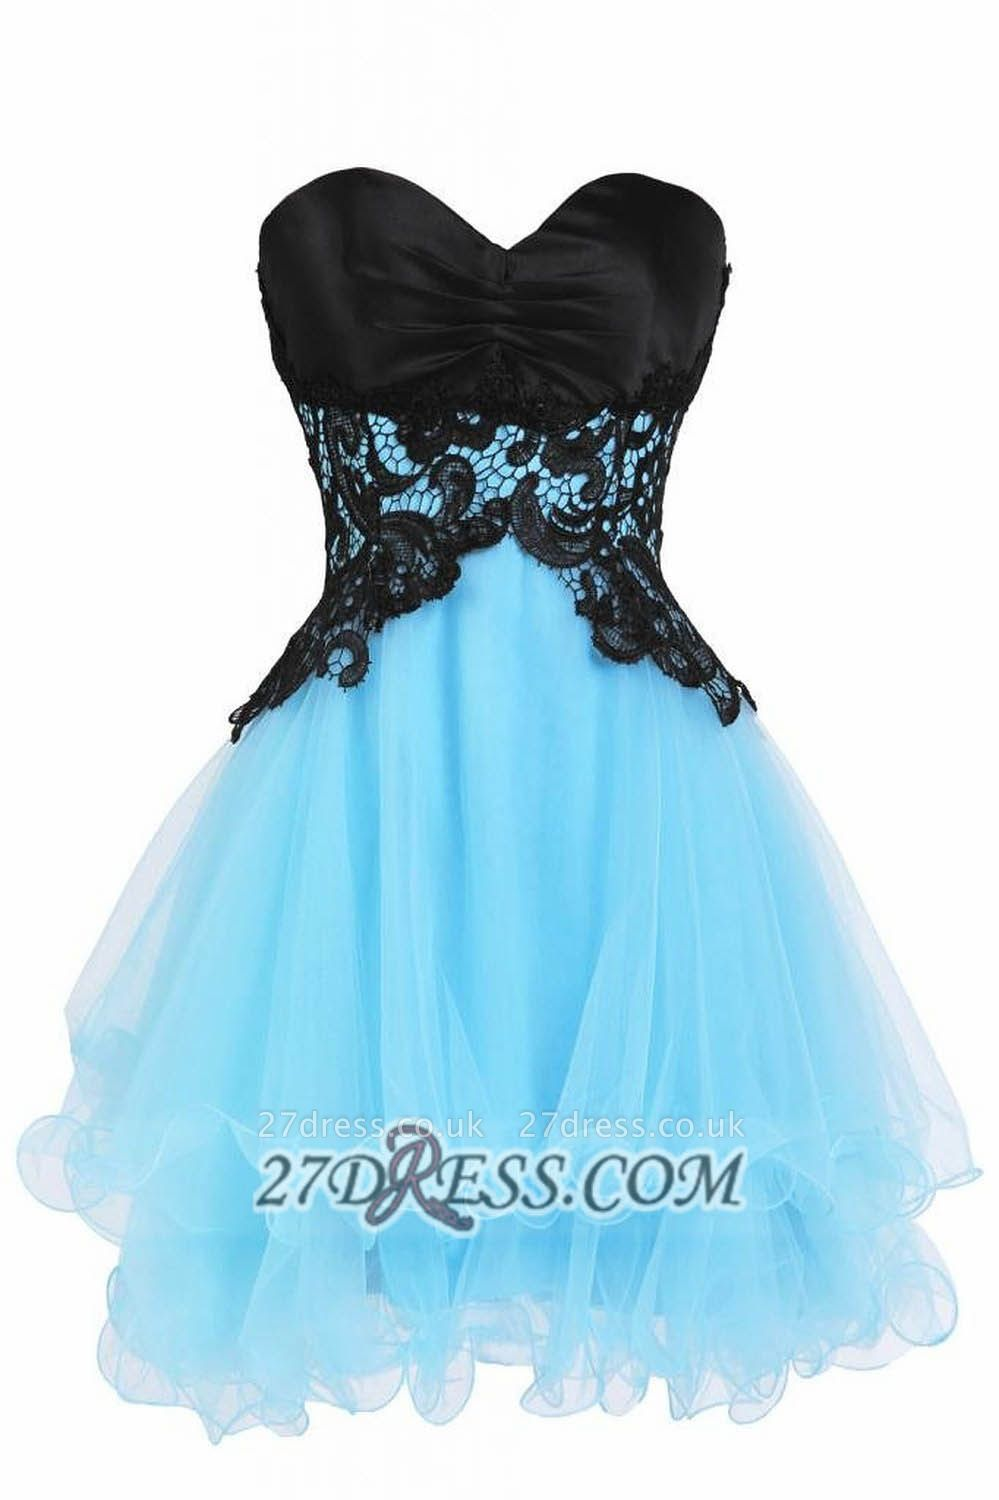 Elegant Sweetheart Sleeveless Cocktail Dress UK With Lace Appliques Lace-up